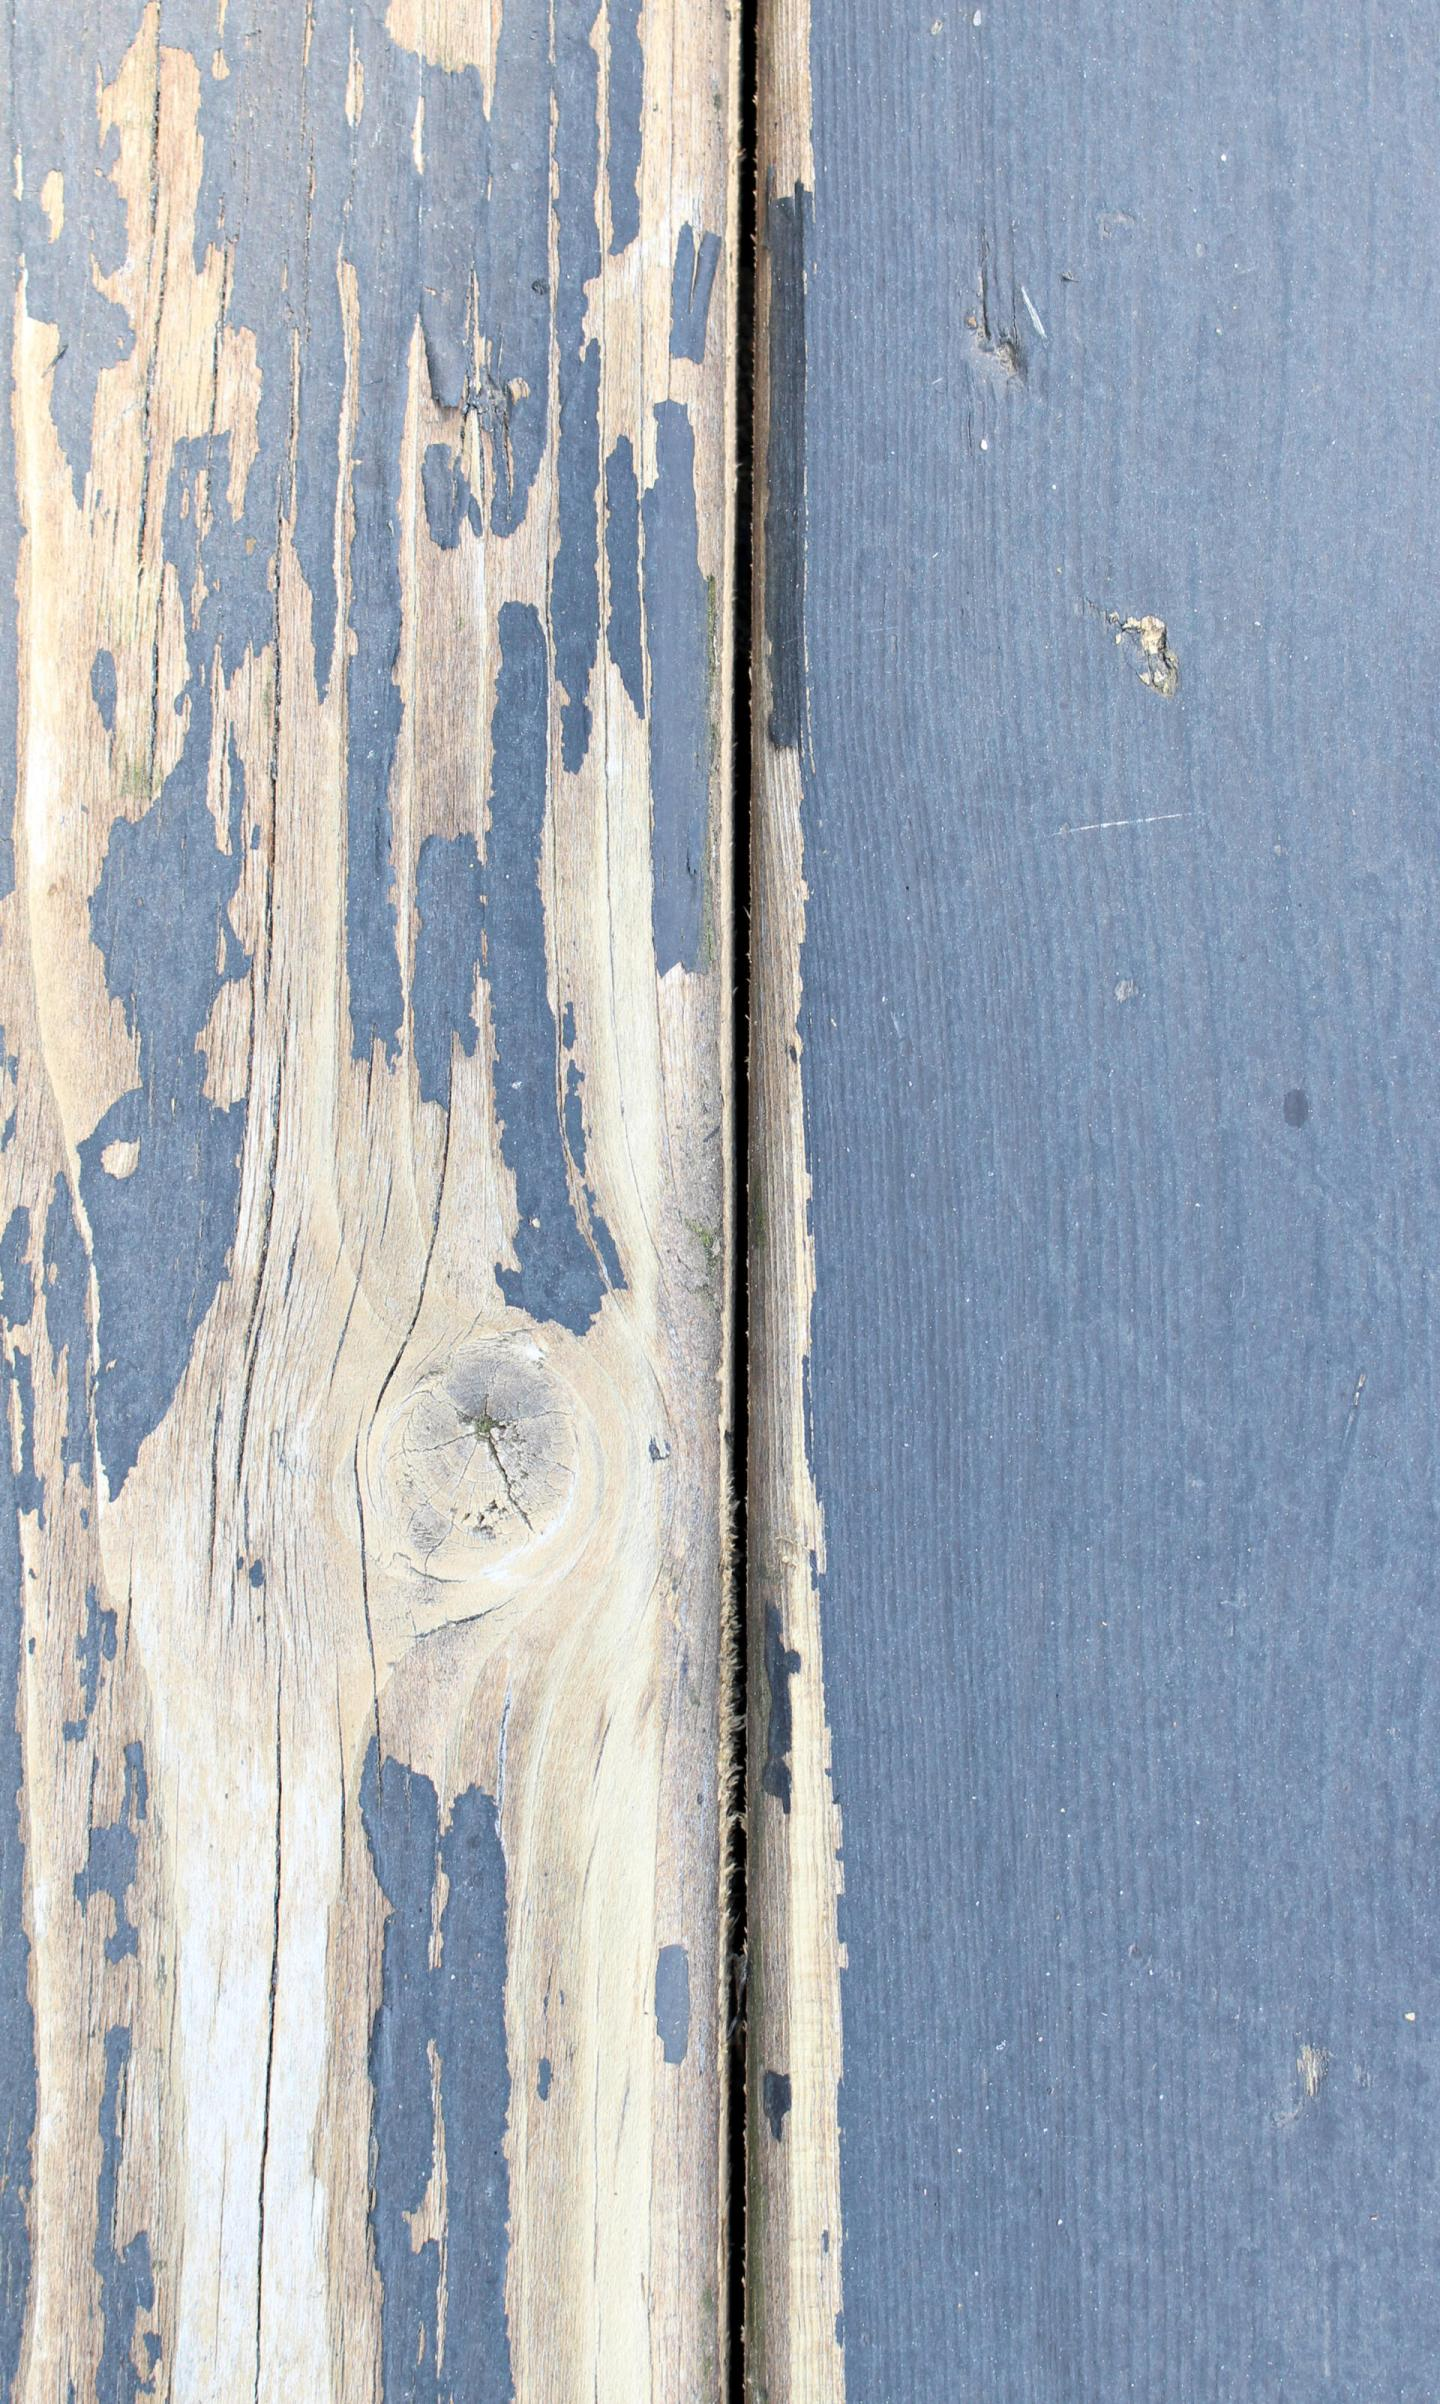 How to Create a Gap Between Deck Boards on Old Deck